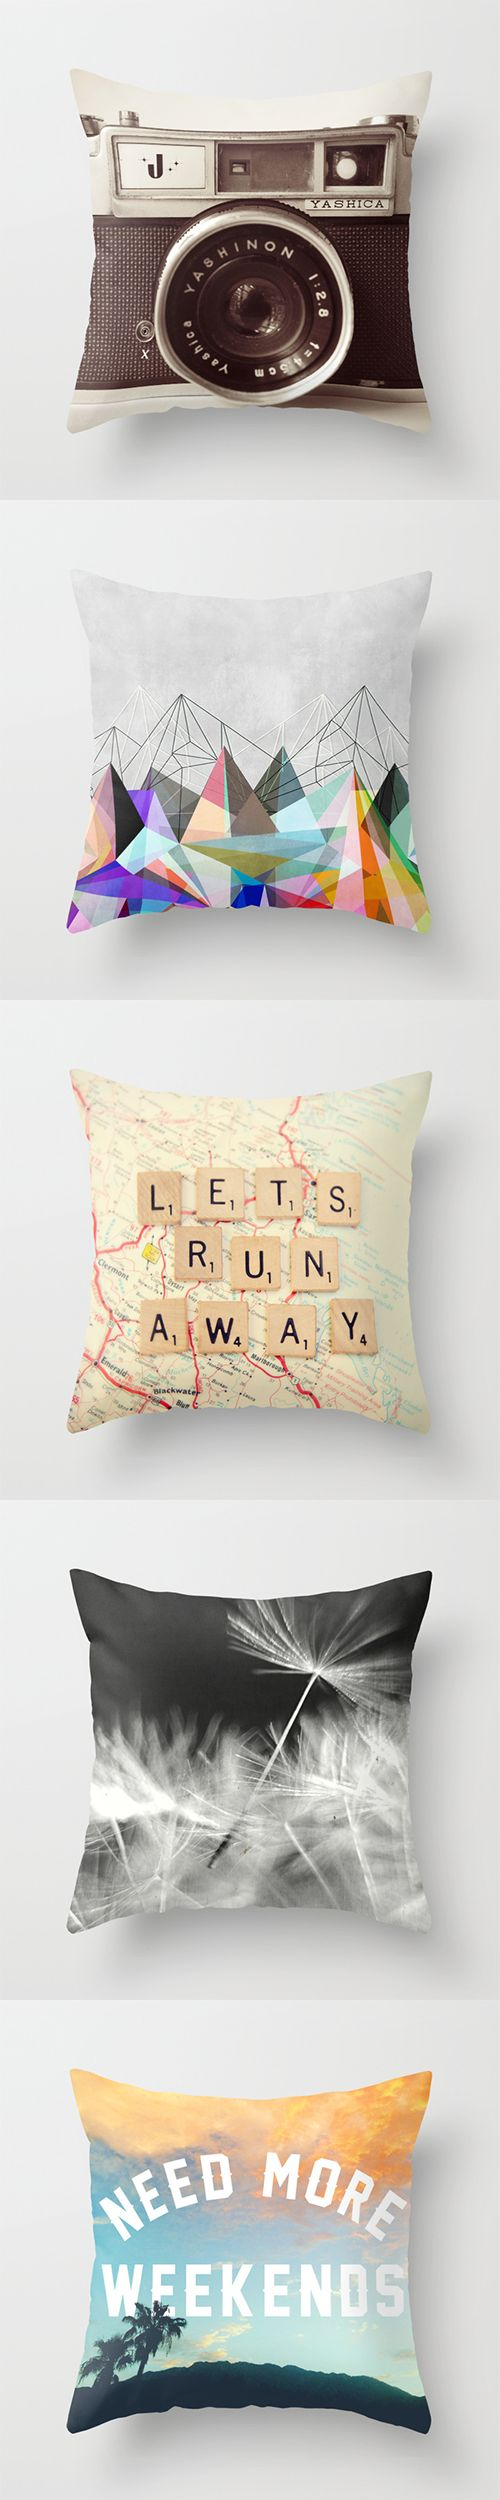 Throw Pillows and millions of other products available at Society6.com today. Every purchase supports independent art and the artist that created it.: